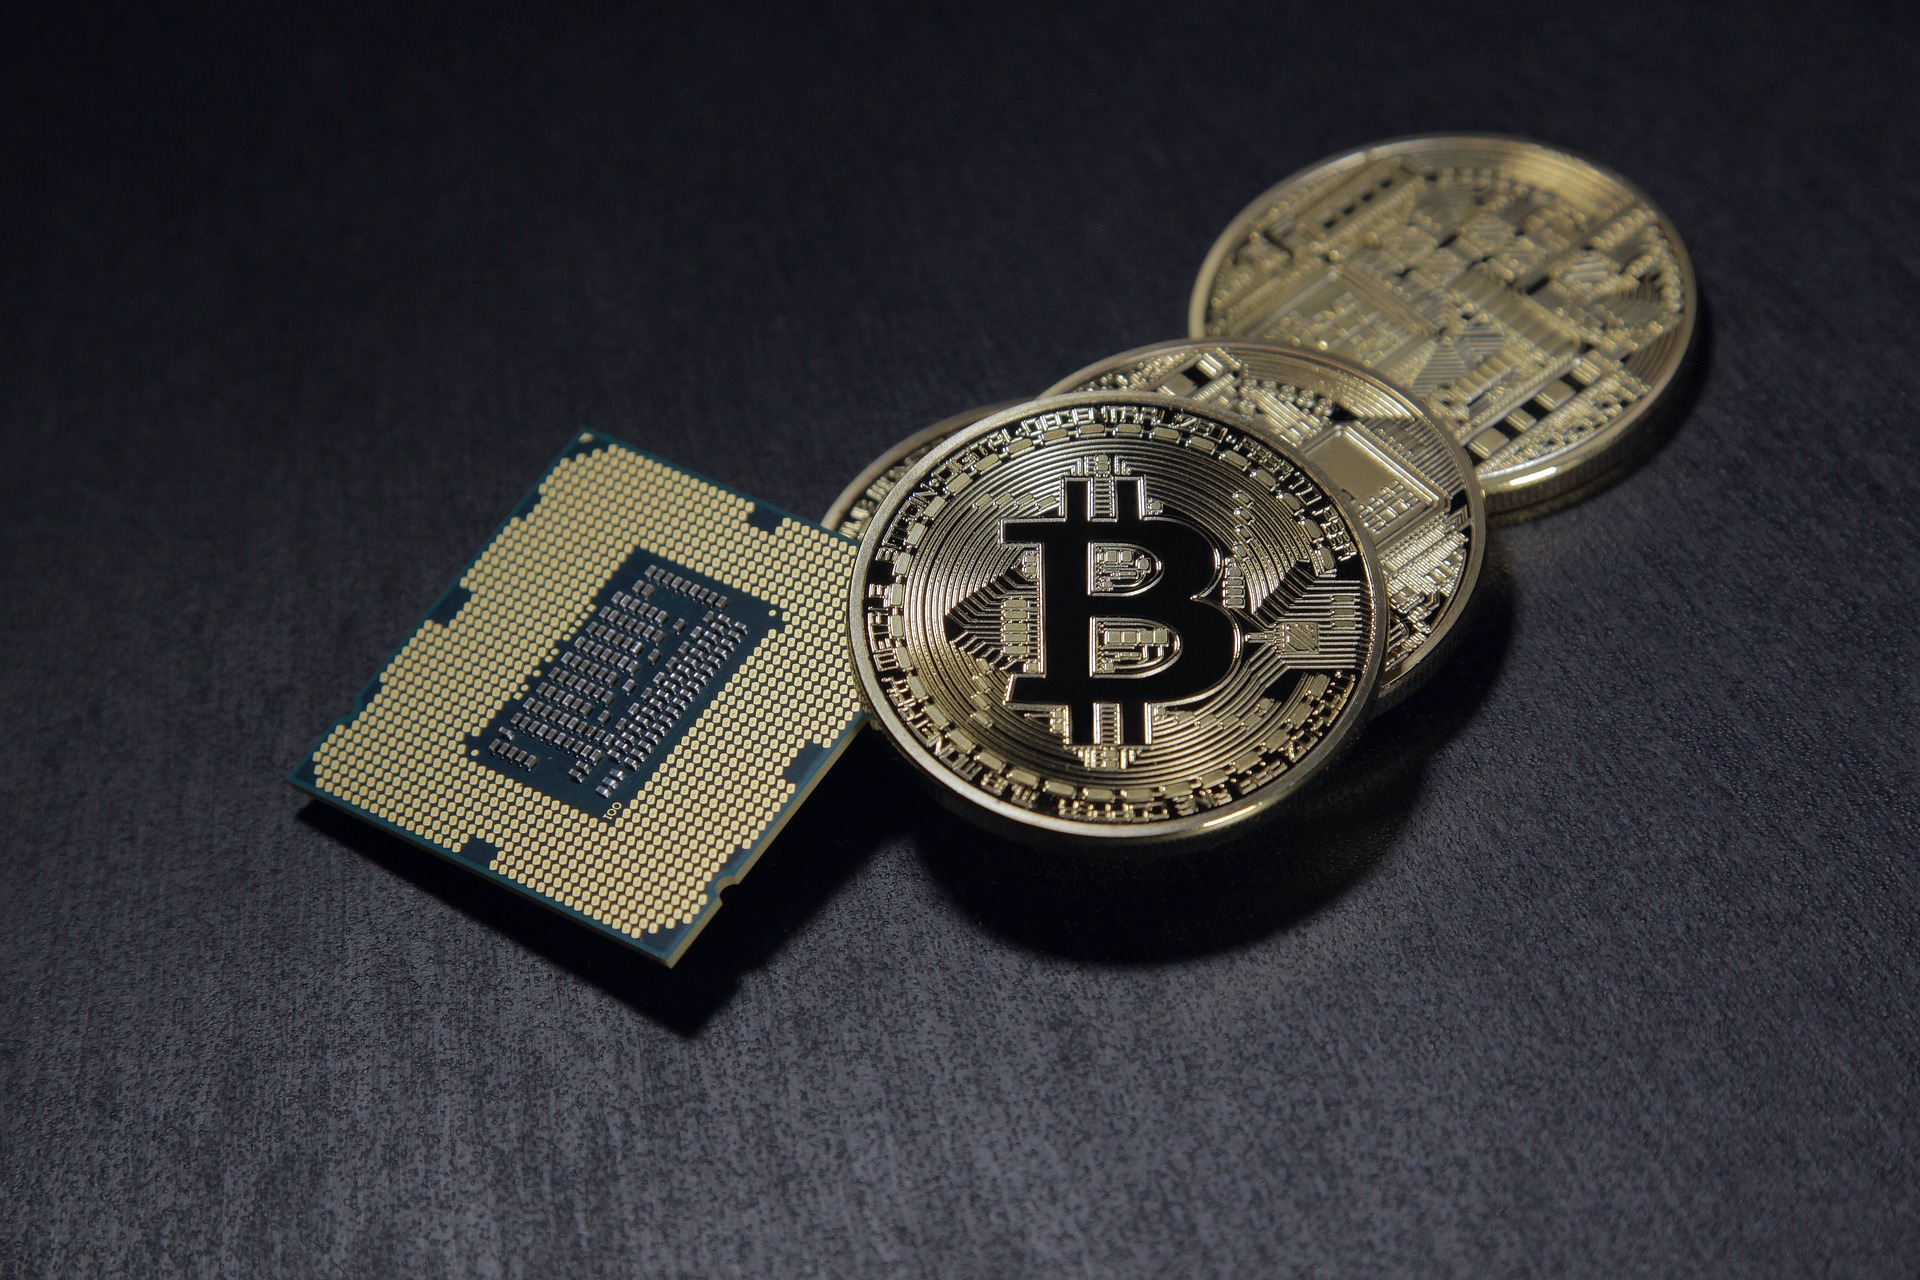 investments similar to cryptocurrency